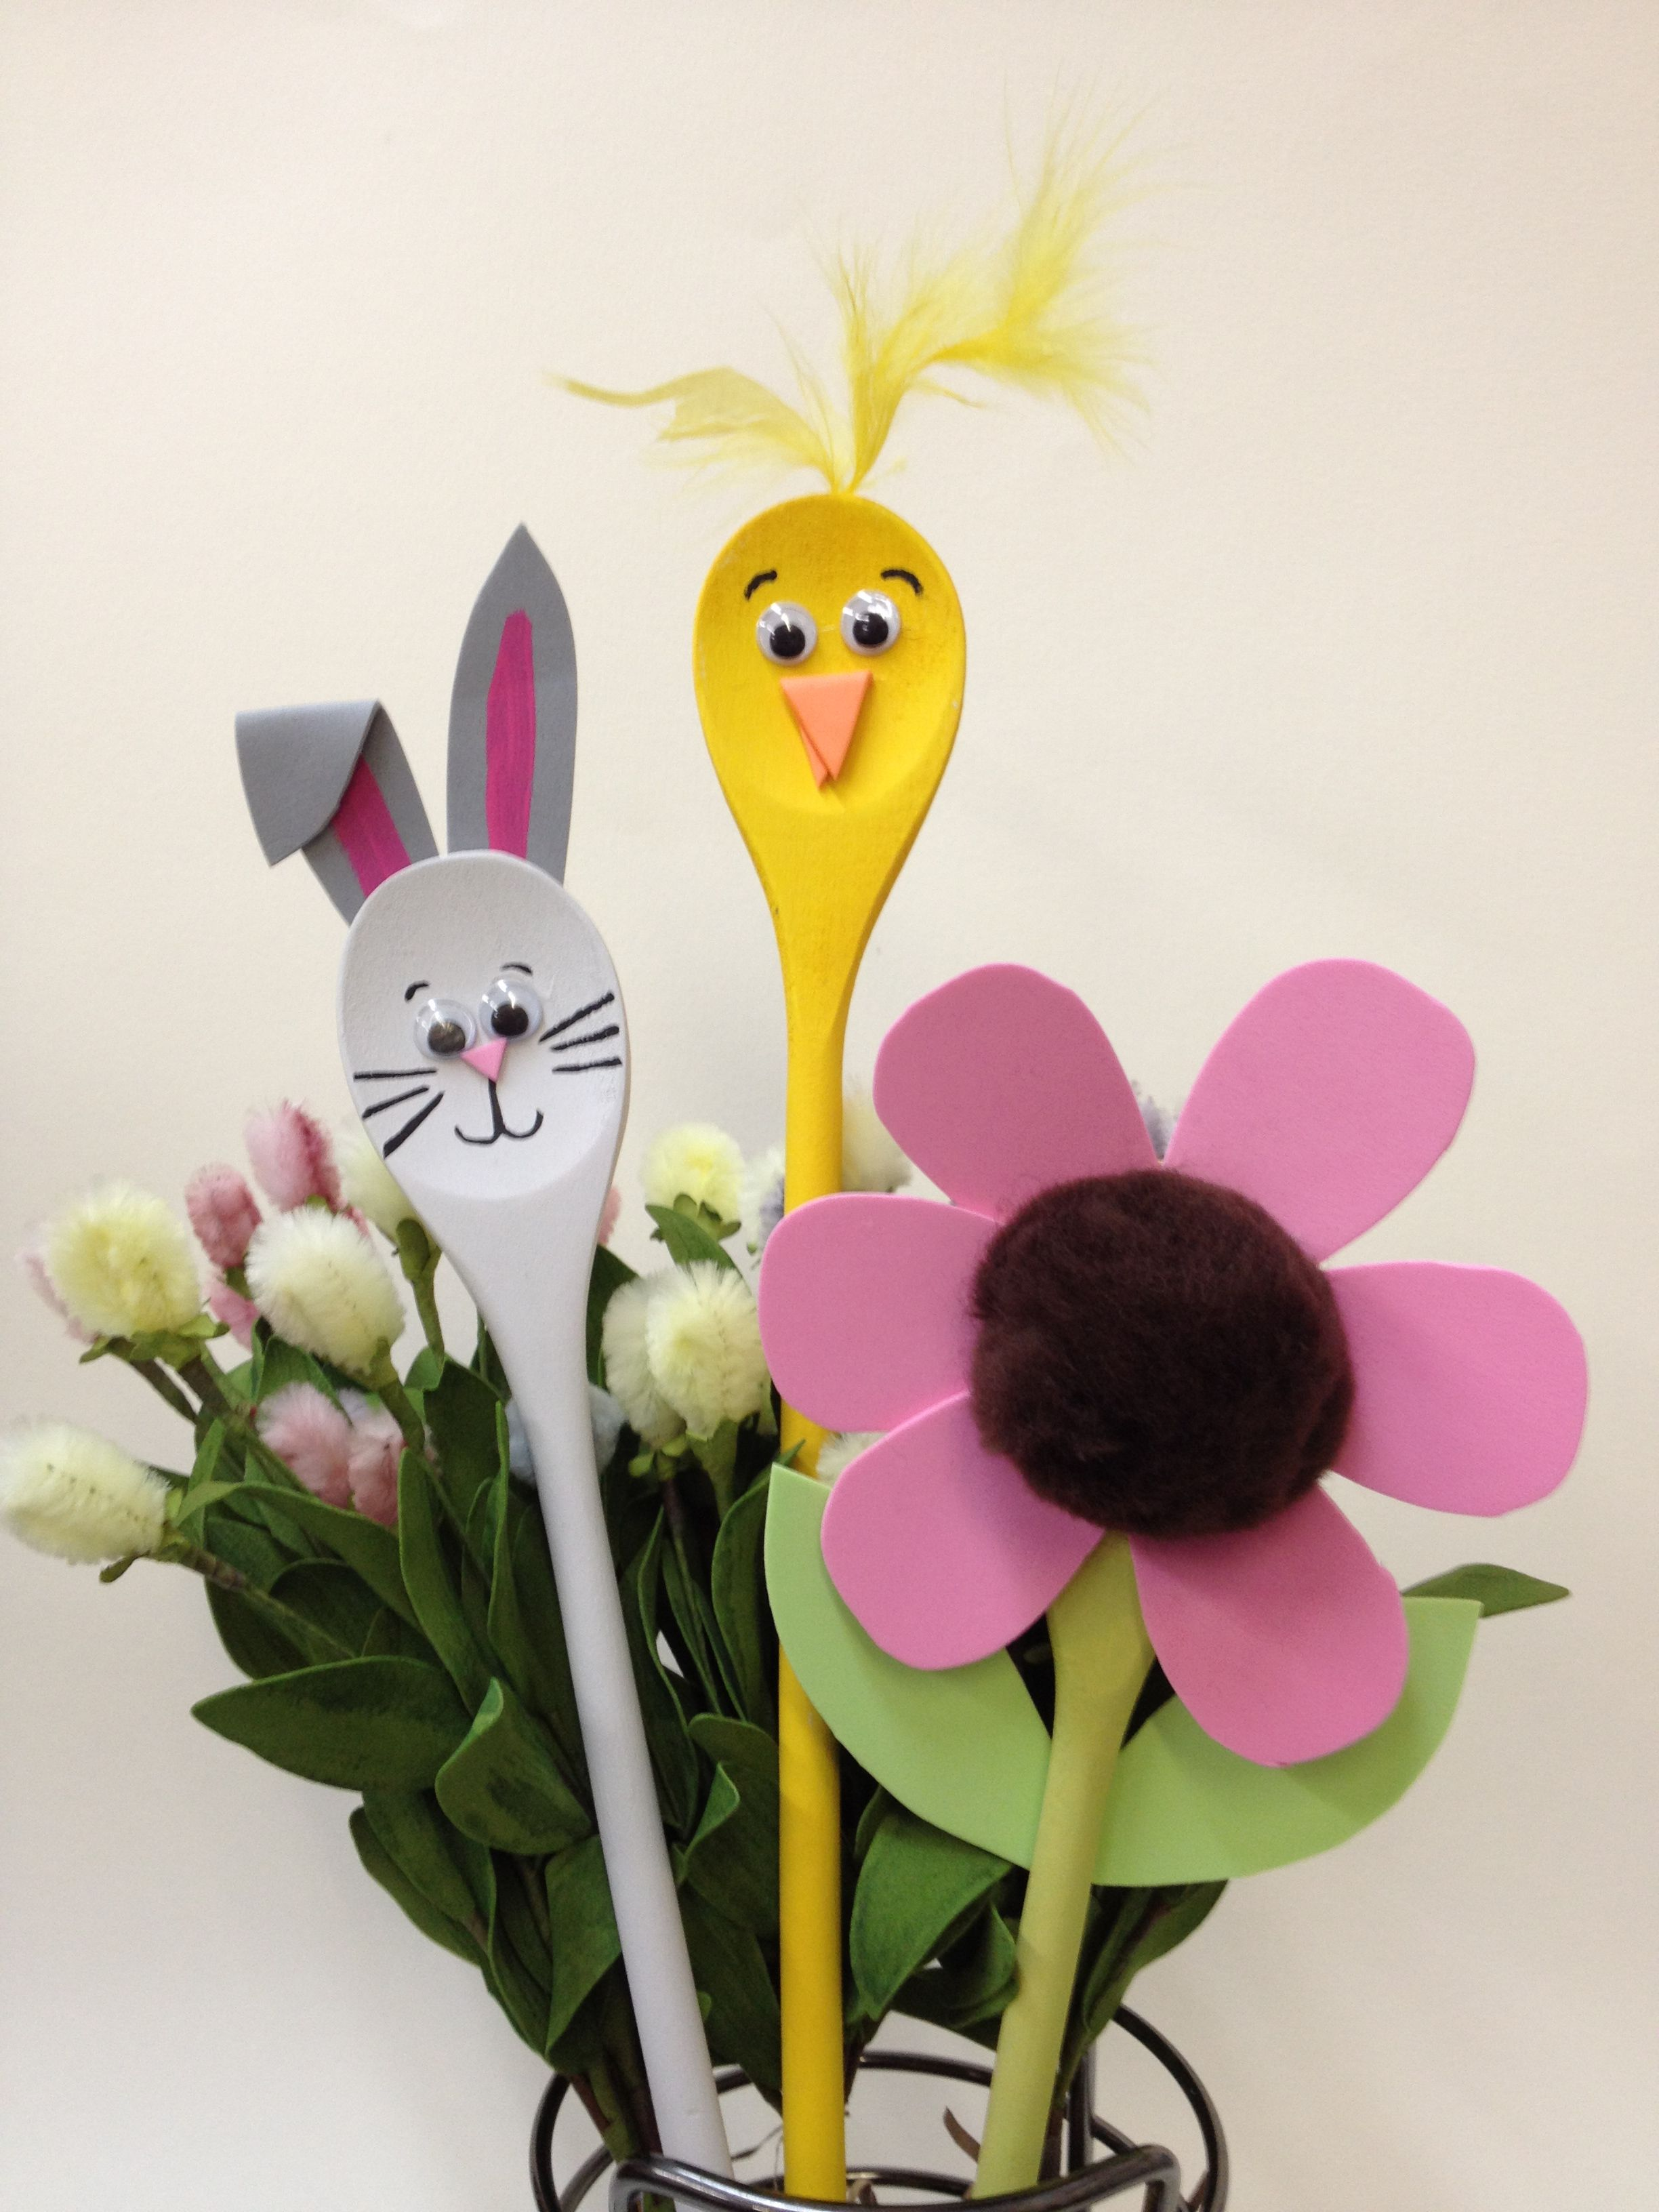 Refreshing craft ideas for easter and spring decoration for home spring spoon decor you can get wooden spoons at the dollar store add some googly eyes and other little accents and you have yourself a great kids craft solutioingenieria Images